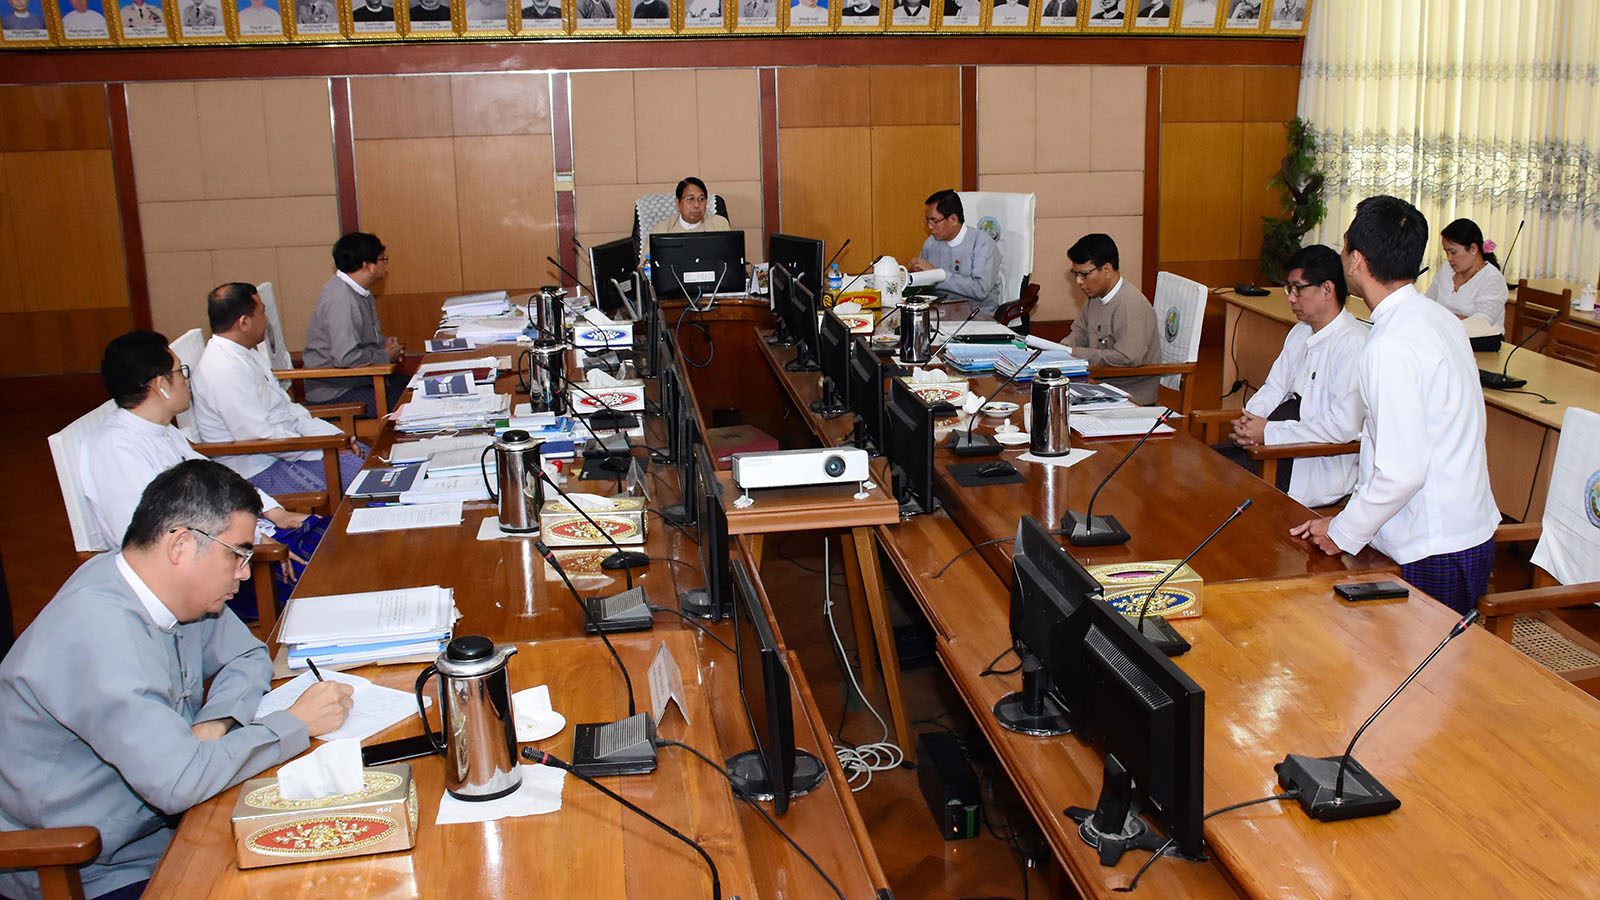 Union Minister Dr Pe Myint held the meeting with officials from ABC Content Solution Co Ltd (Mahar Mobile Application) in Nay Pyi Taw yesterday. Photo: MNA